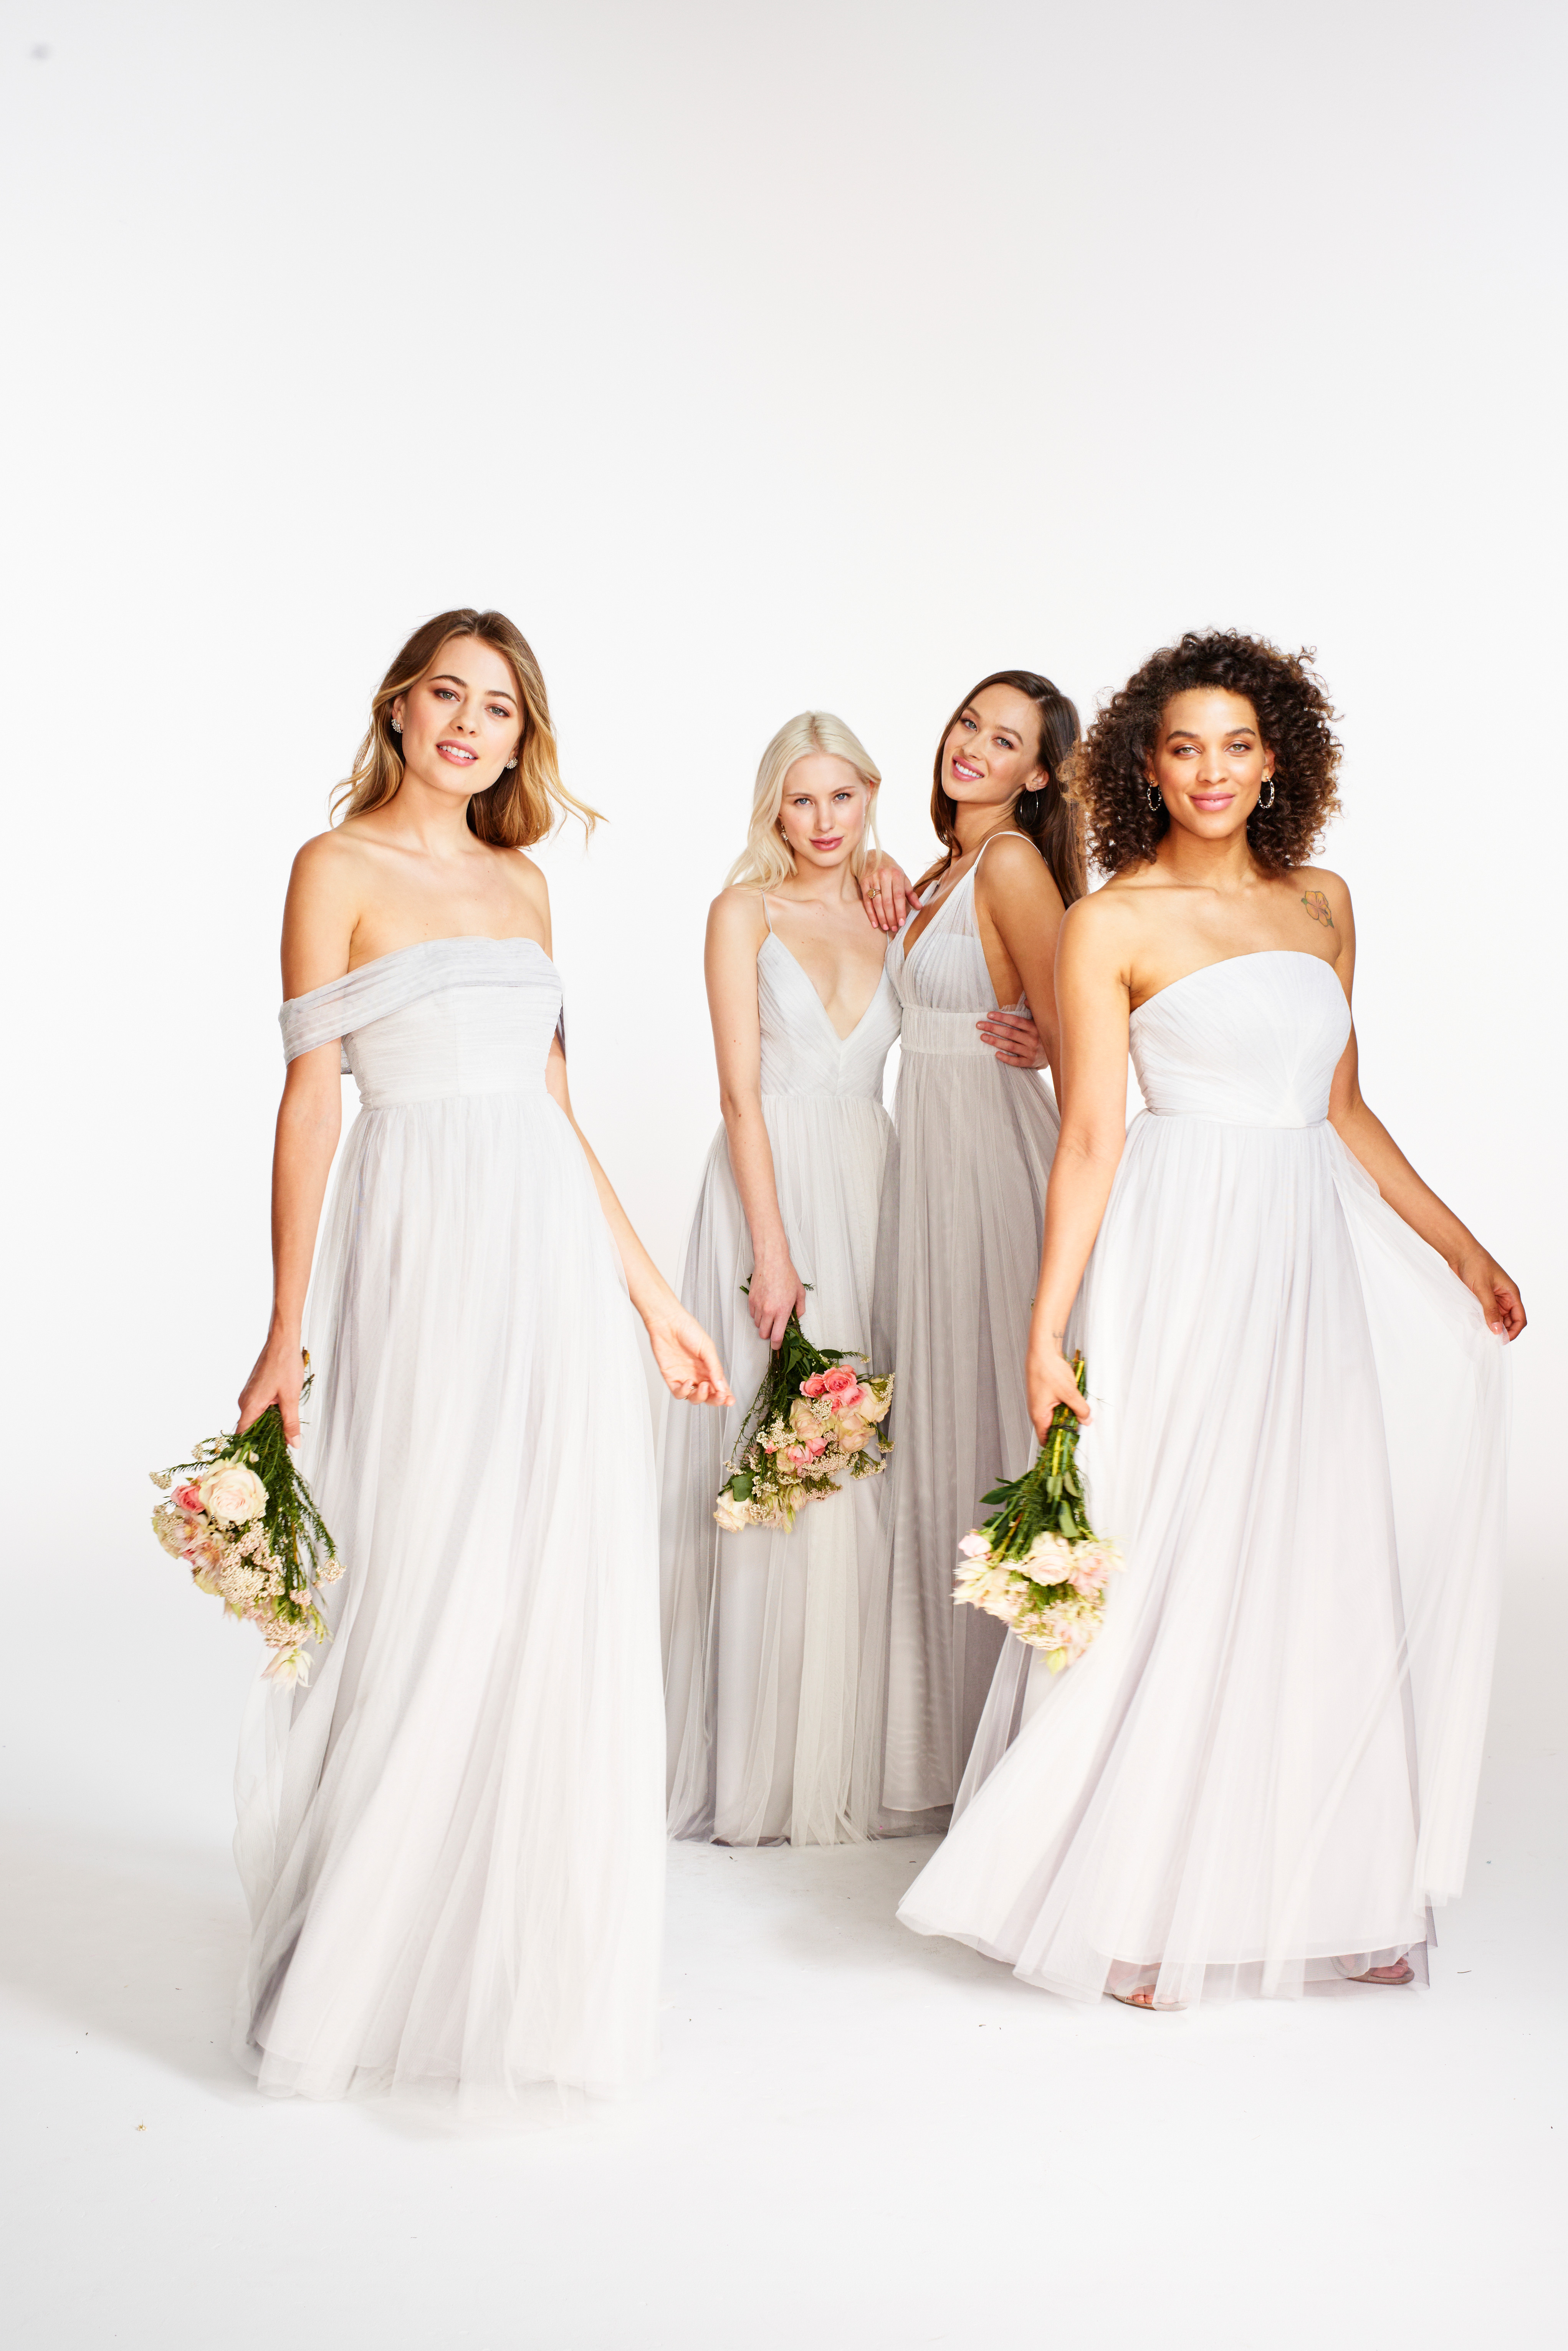 Bridesmaids Appointment